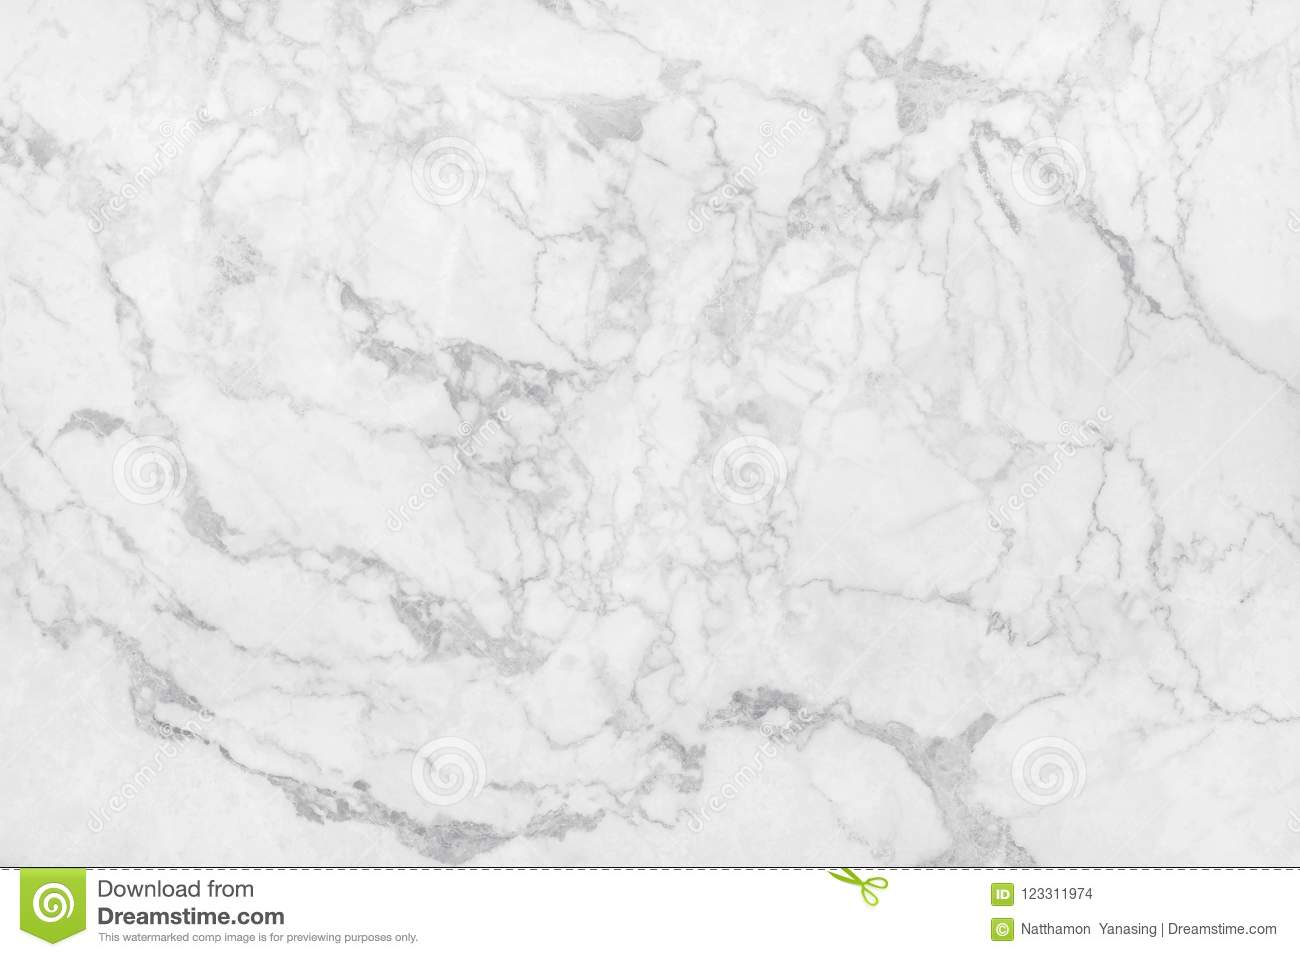 White Grey Marble Texture Background With Detailed Structure High Resolution Bright And Luxurious Abstract Seamless Of Tile Stone Floor In Natural Pattern